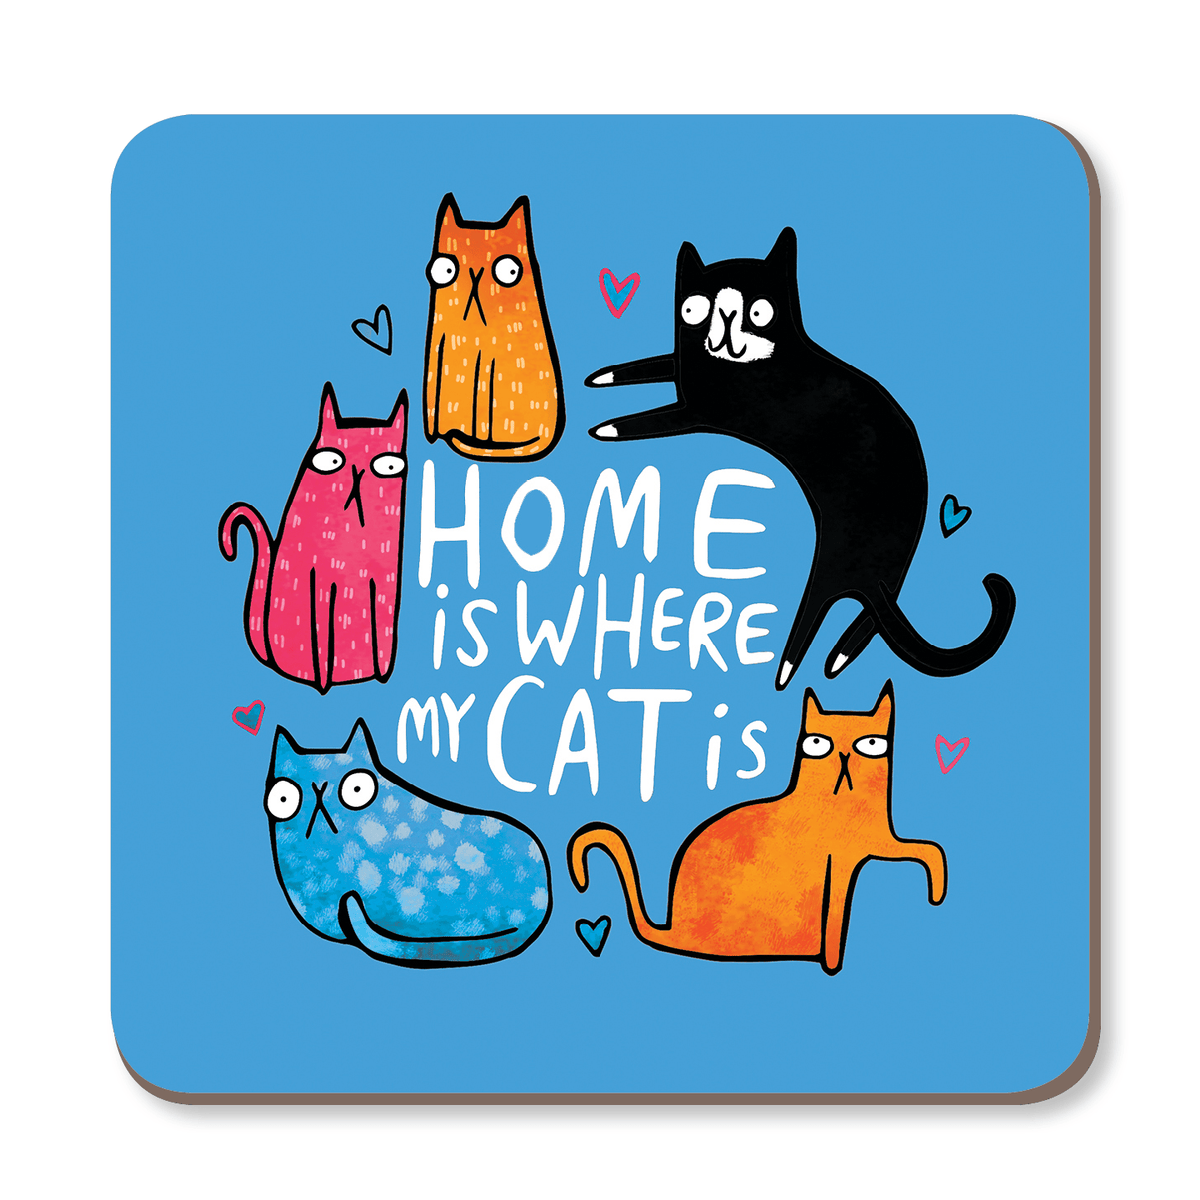 Home Is Where My Cat Is Coaster by Katie Abey - Whale and Bird